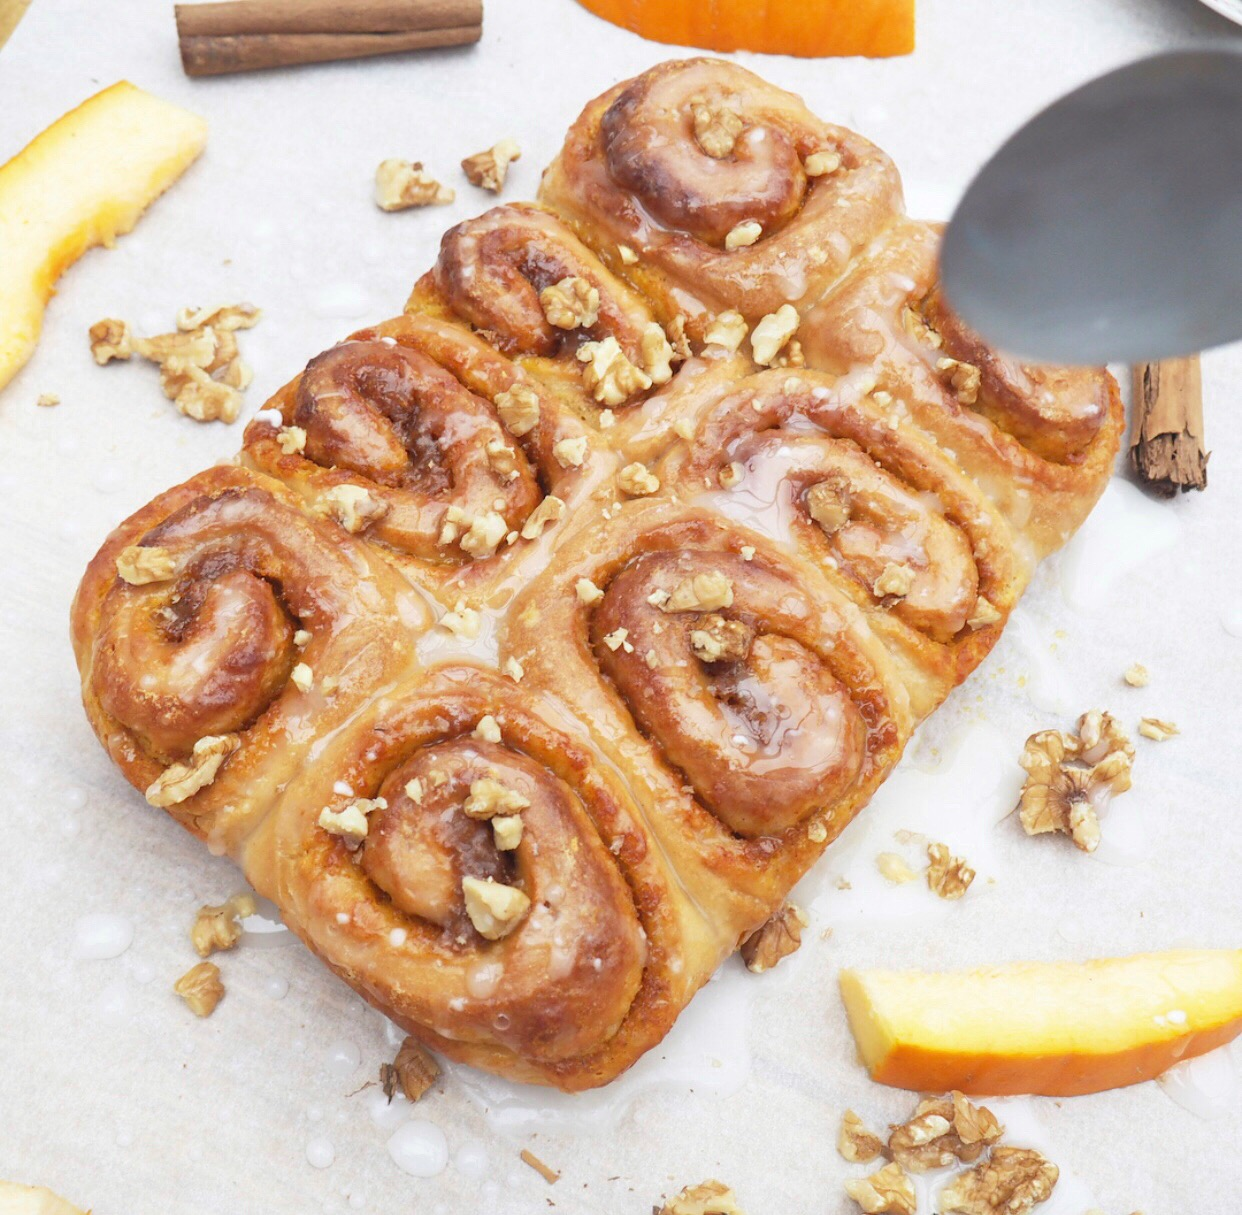 Pumpkin, Cinnamon & Walnut Rolls